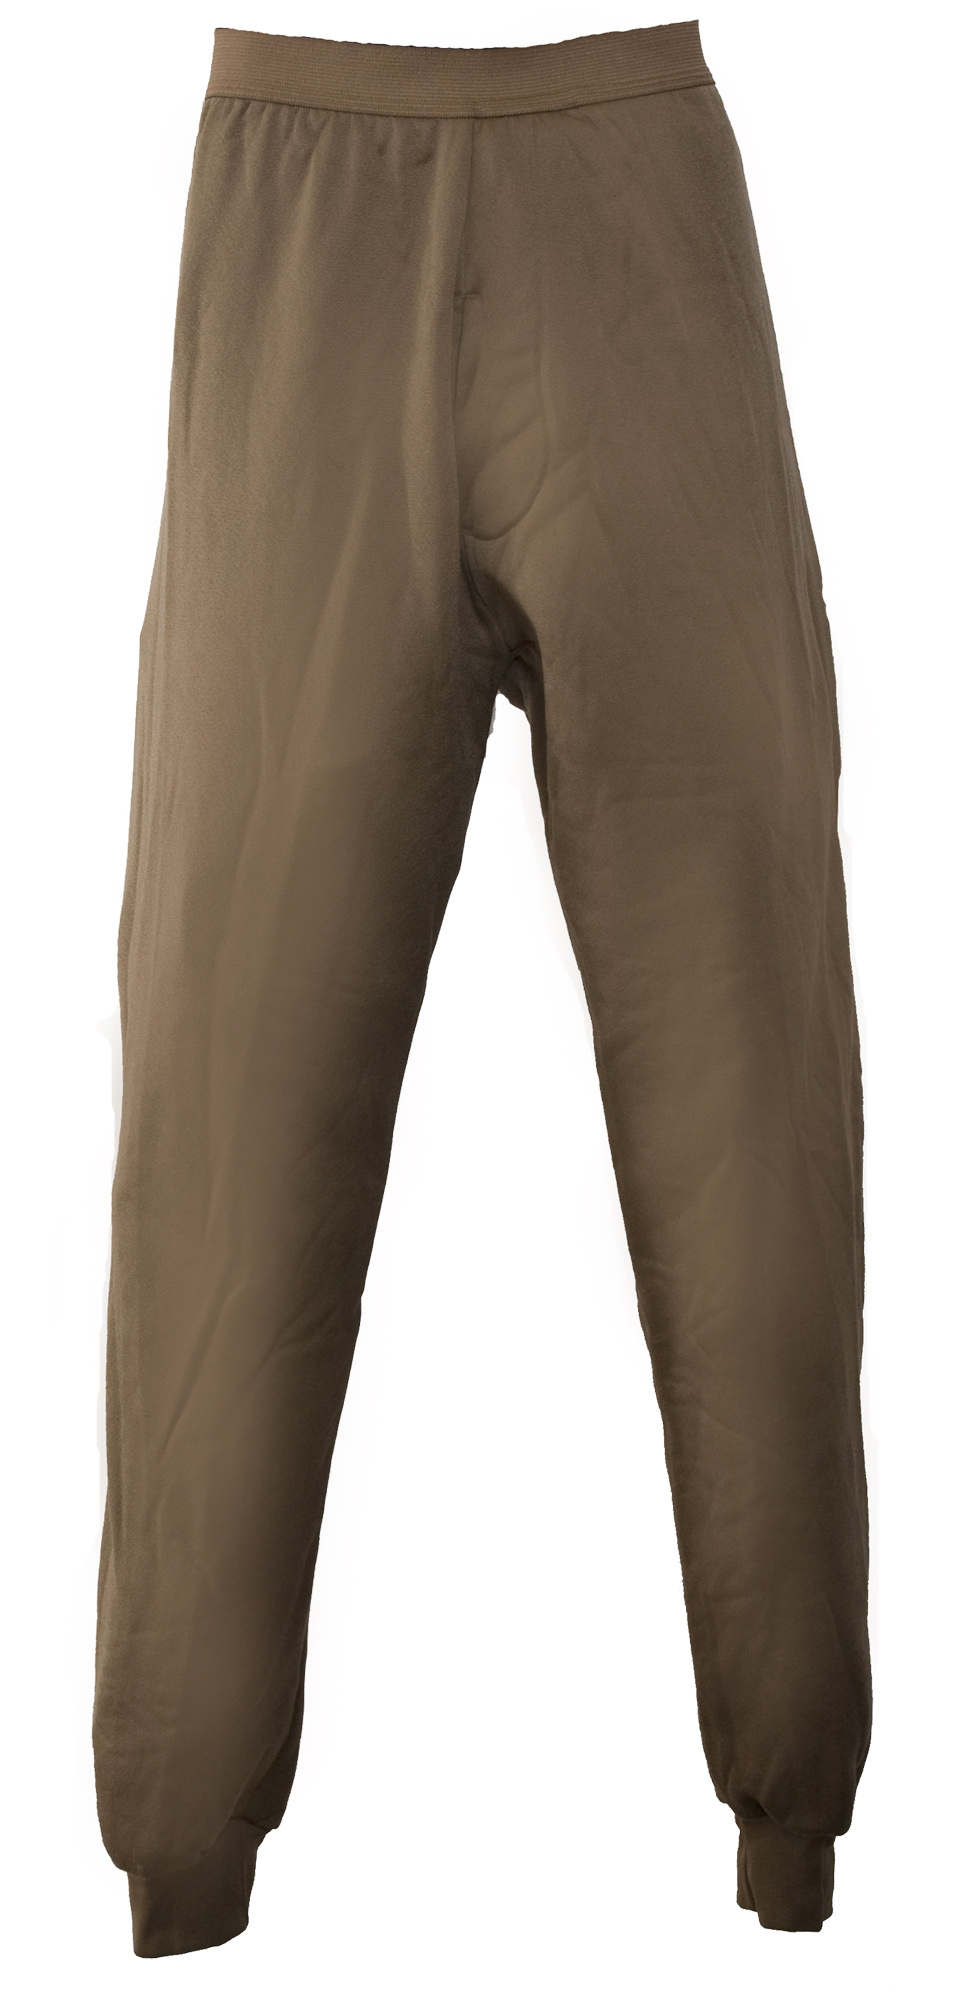 Polypropylene Pant Military Issue